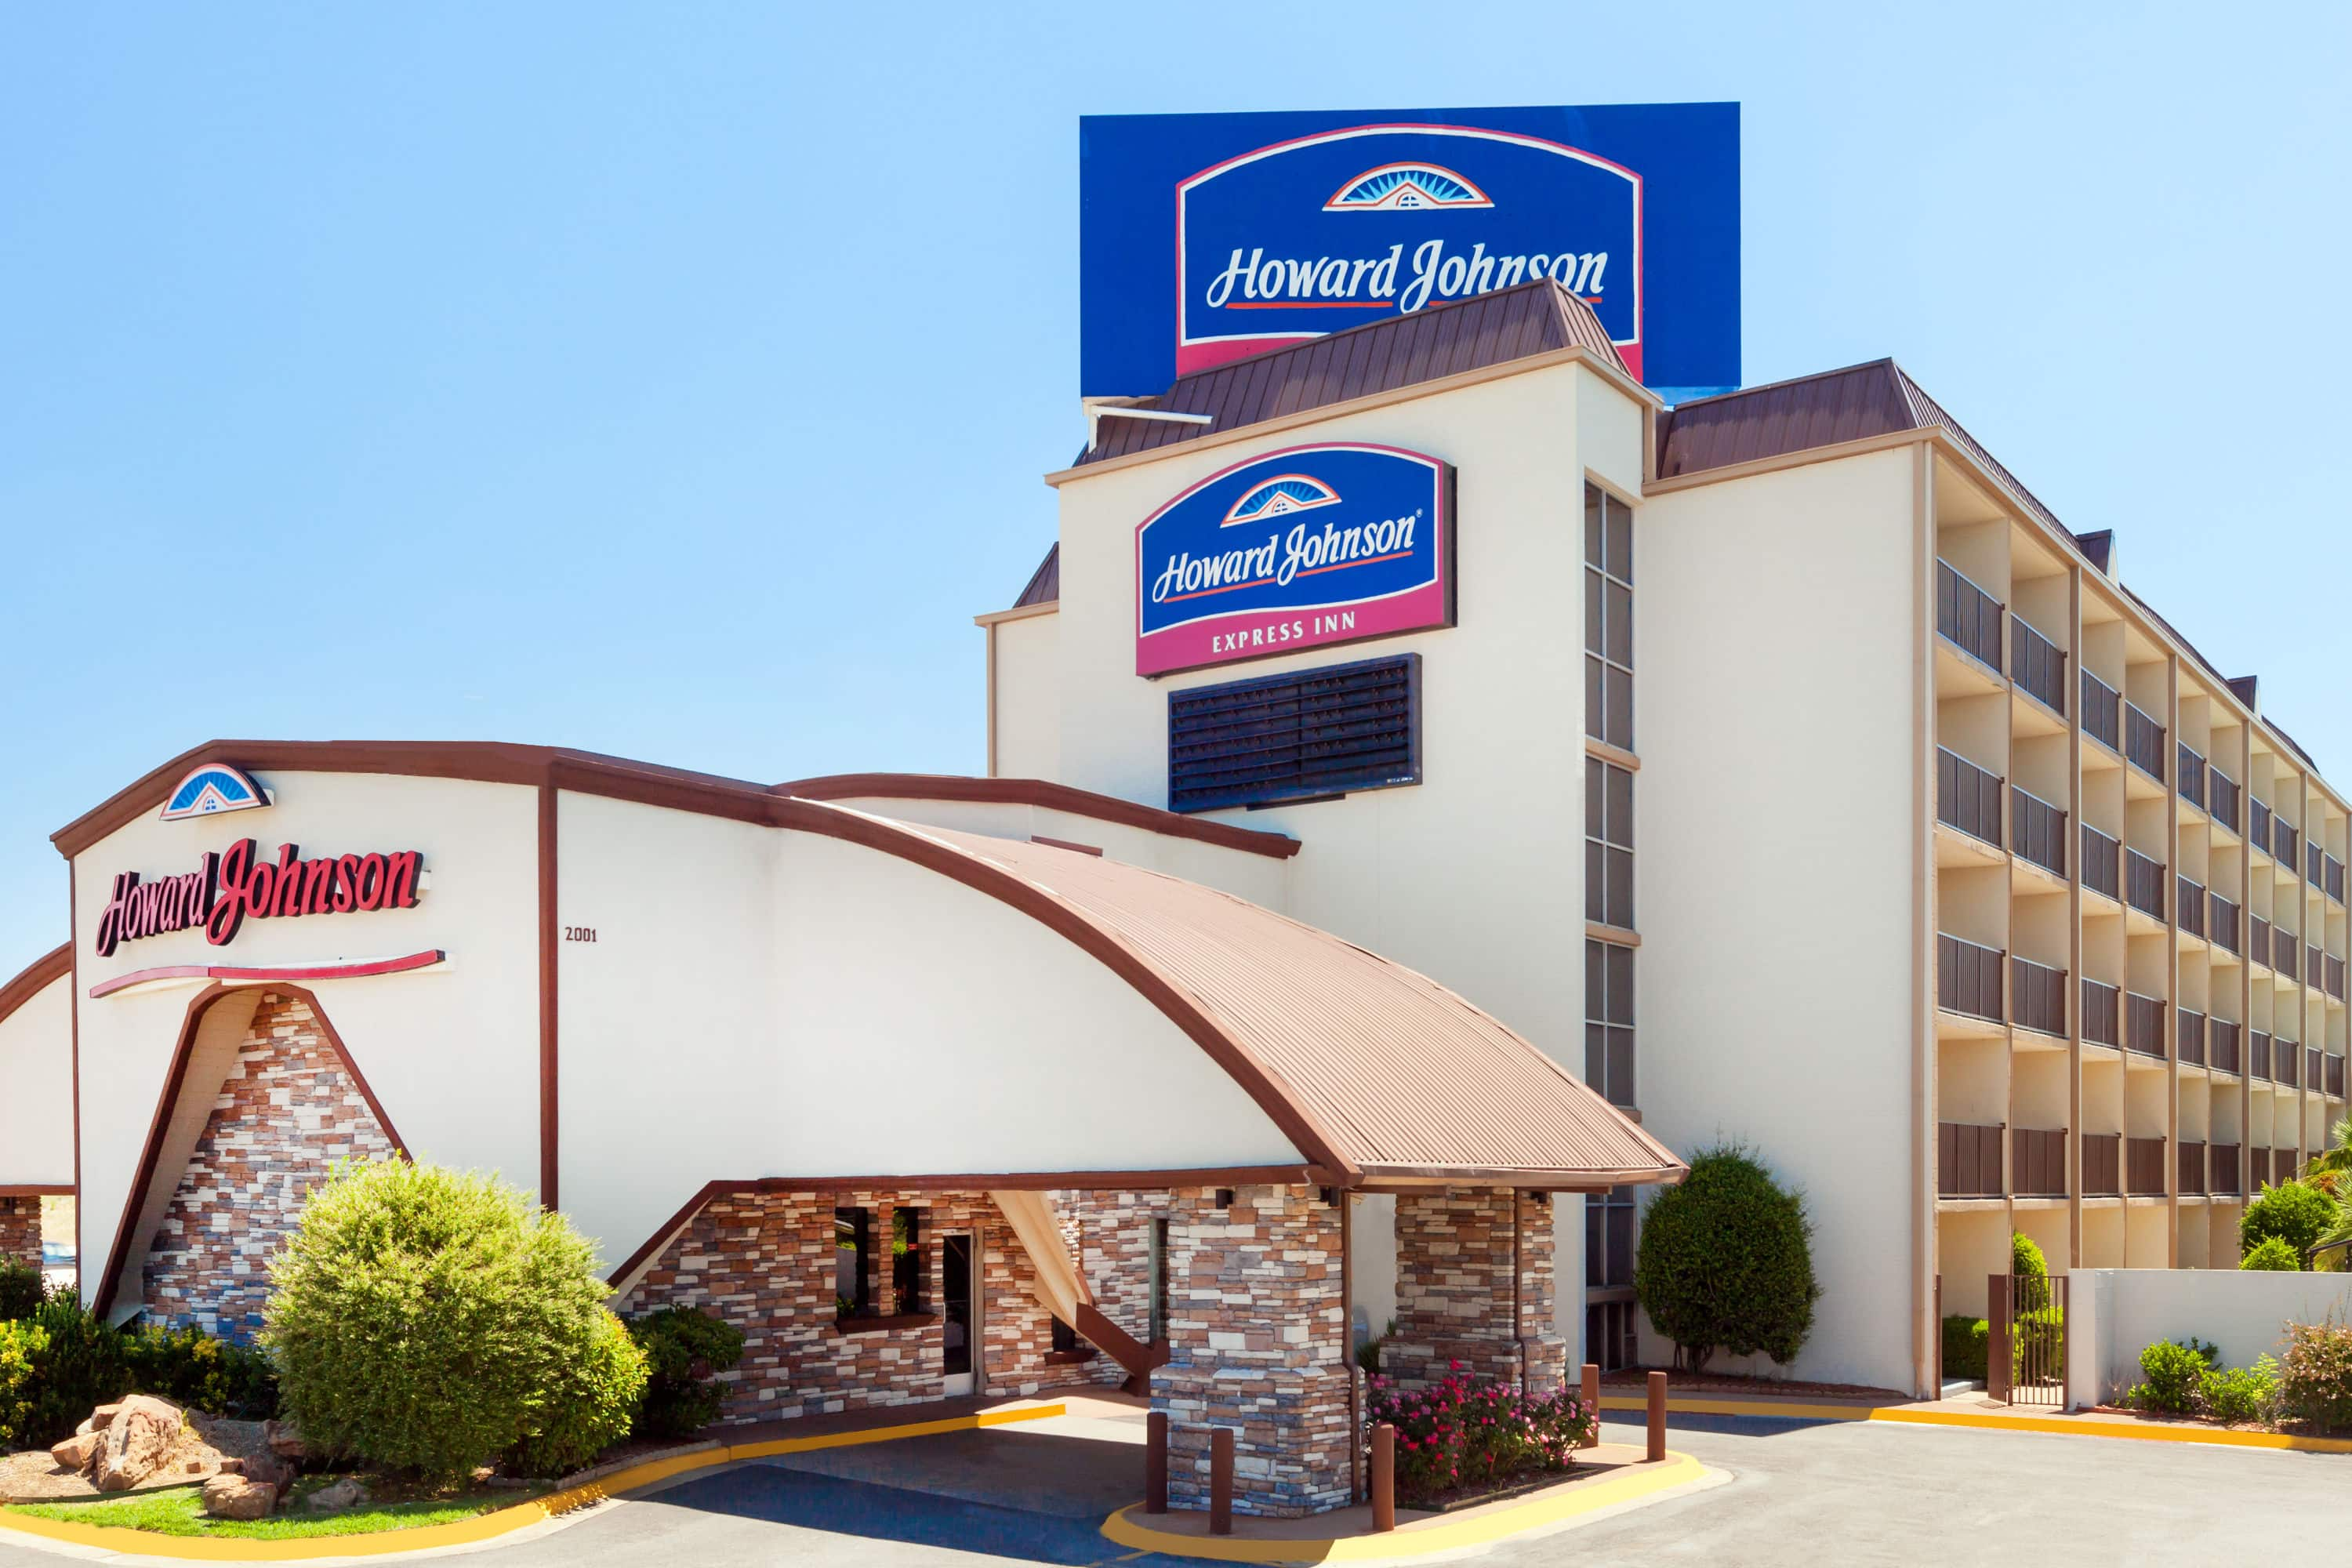 Hotels Near Texas Ranger Stadium Residence Inn Dallas Arlington